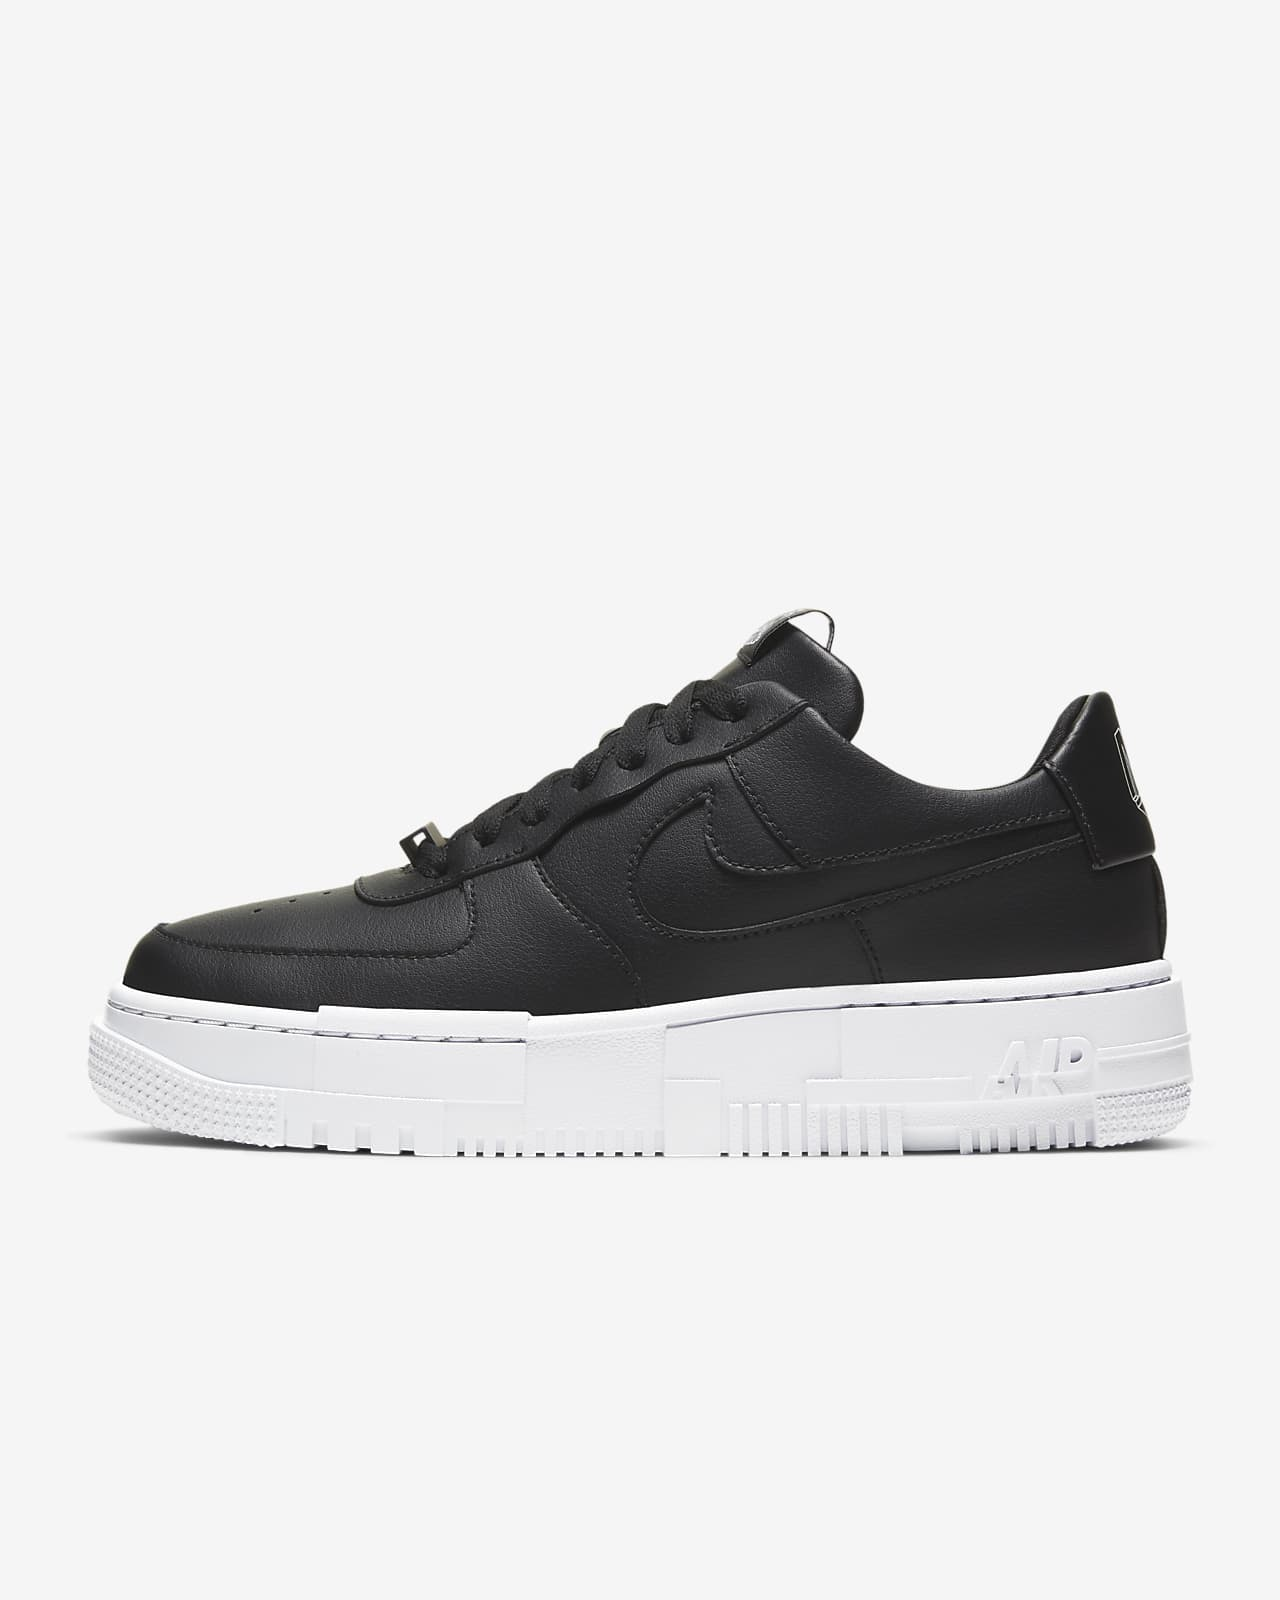 Nike Air Force 1 Pixel Women's Shoe